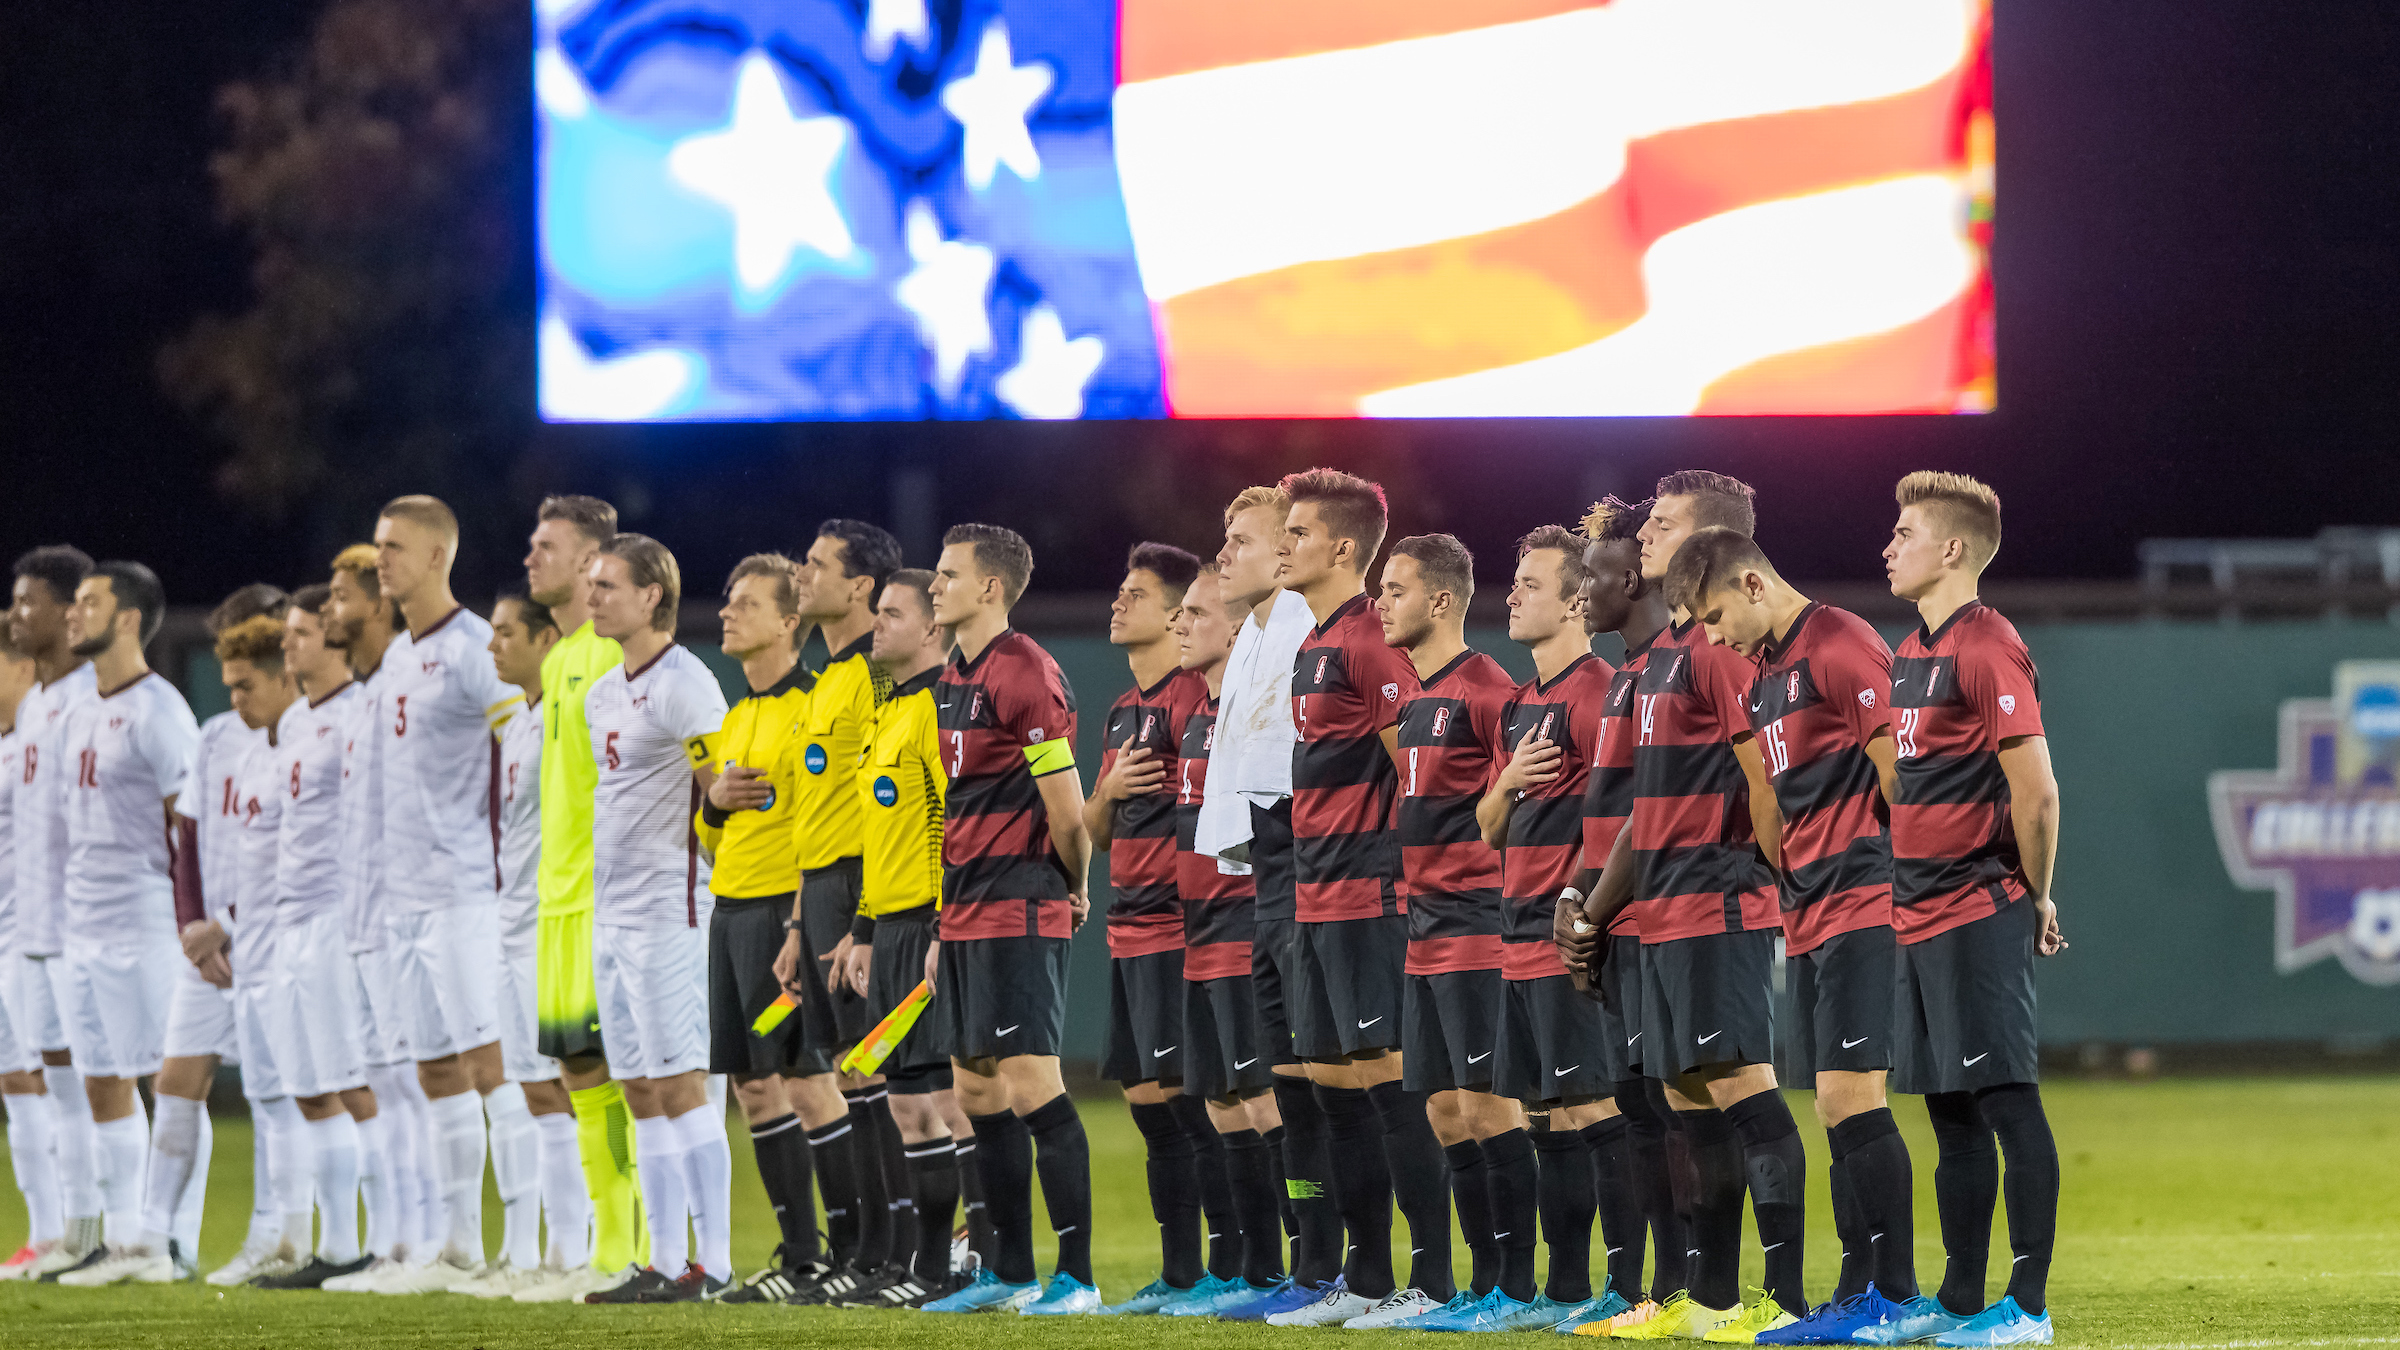 Stanford University Men S Soccer Signs 7 To National Letters Of Intent Soccerwire